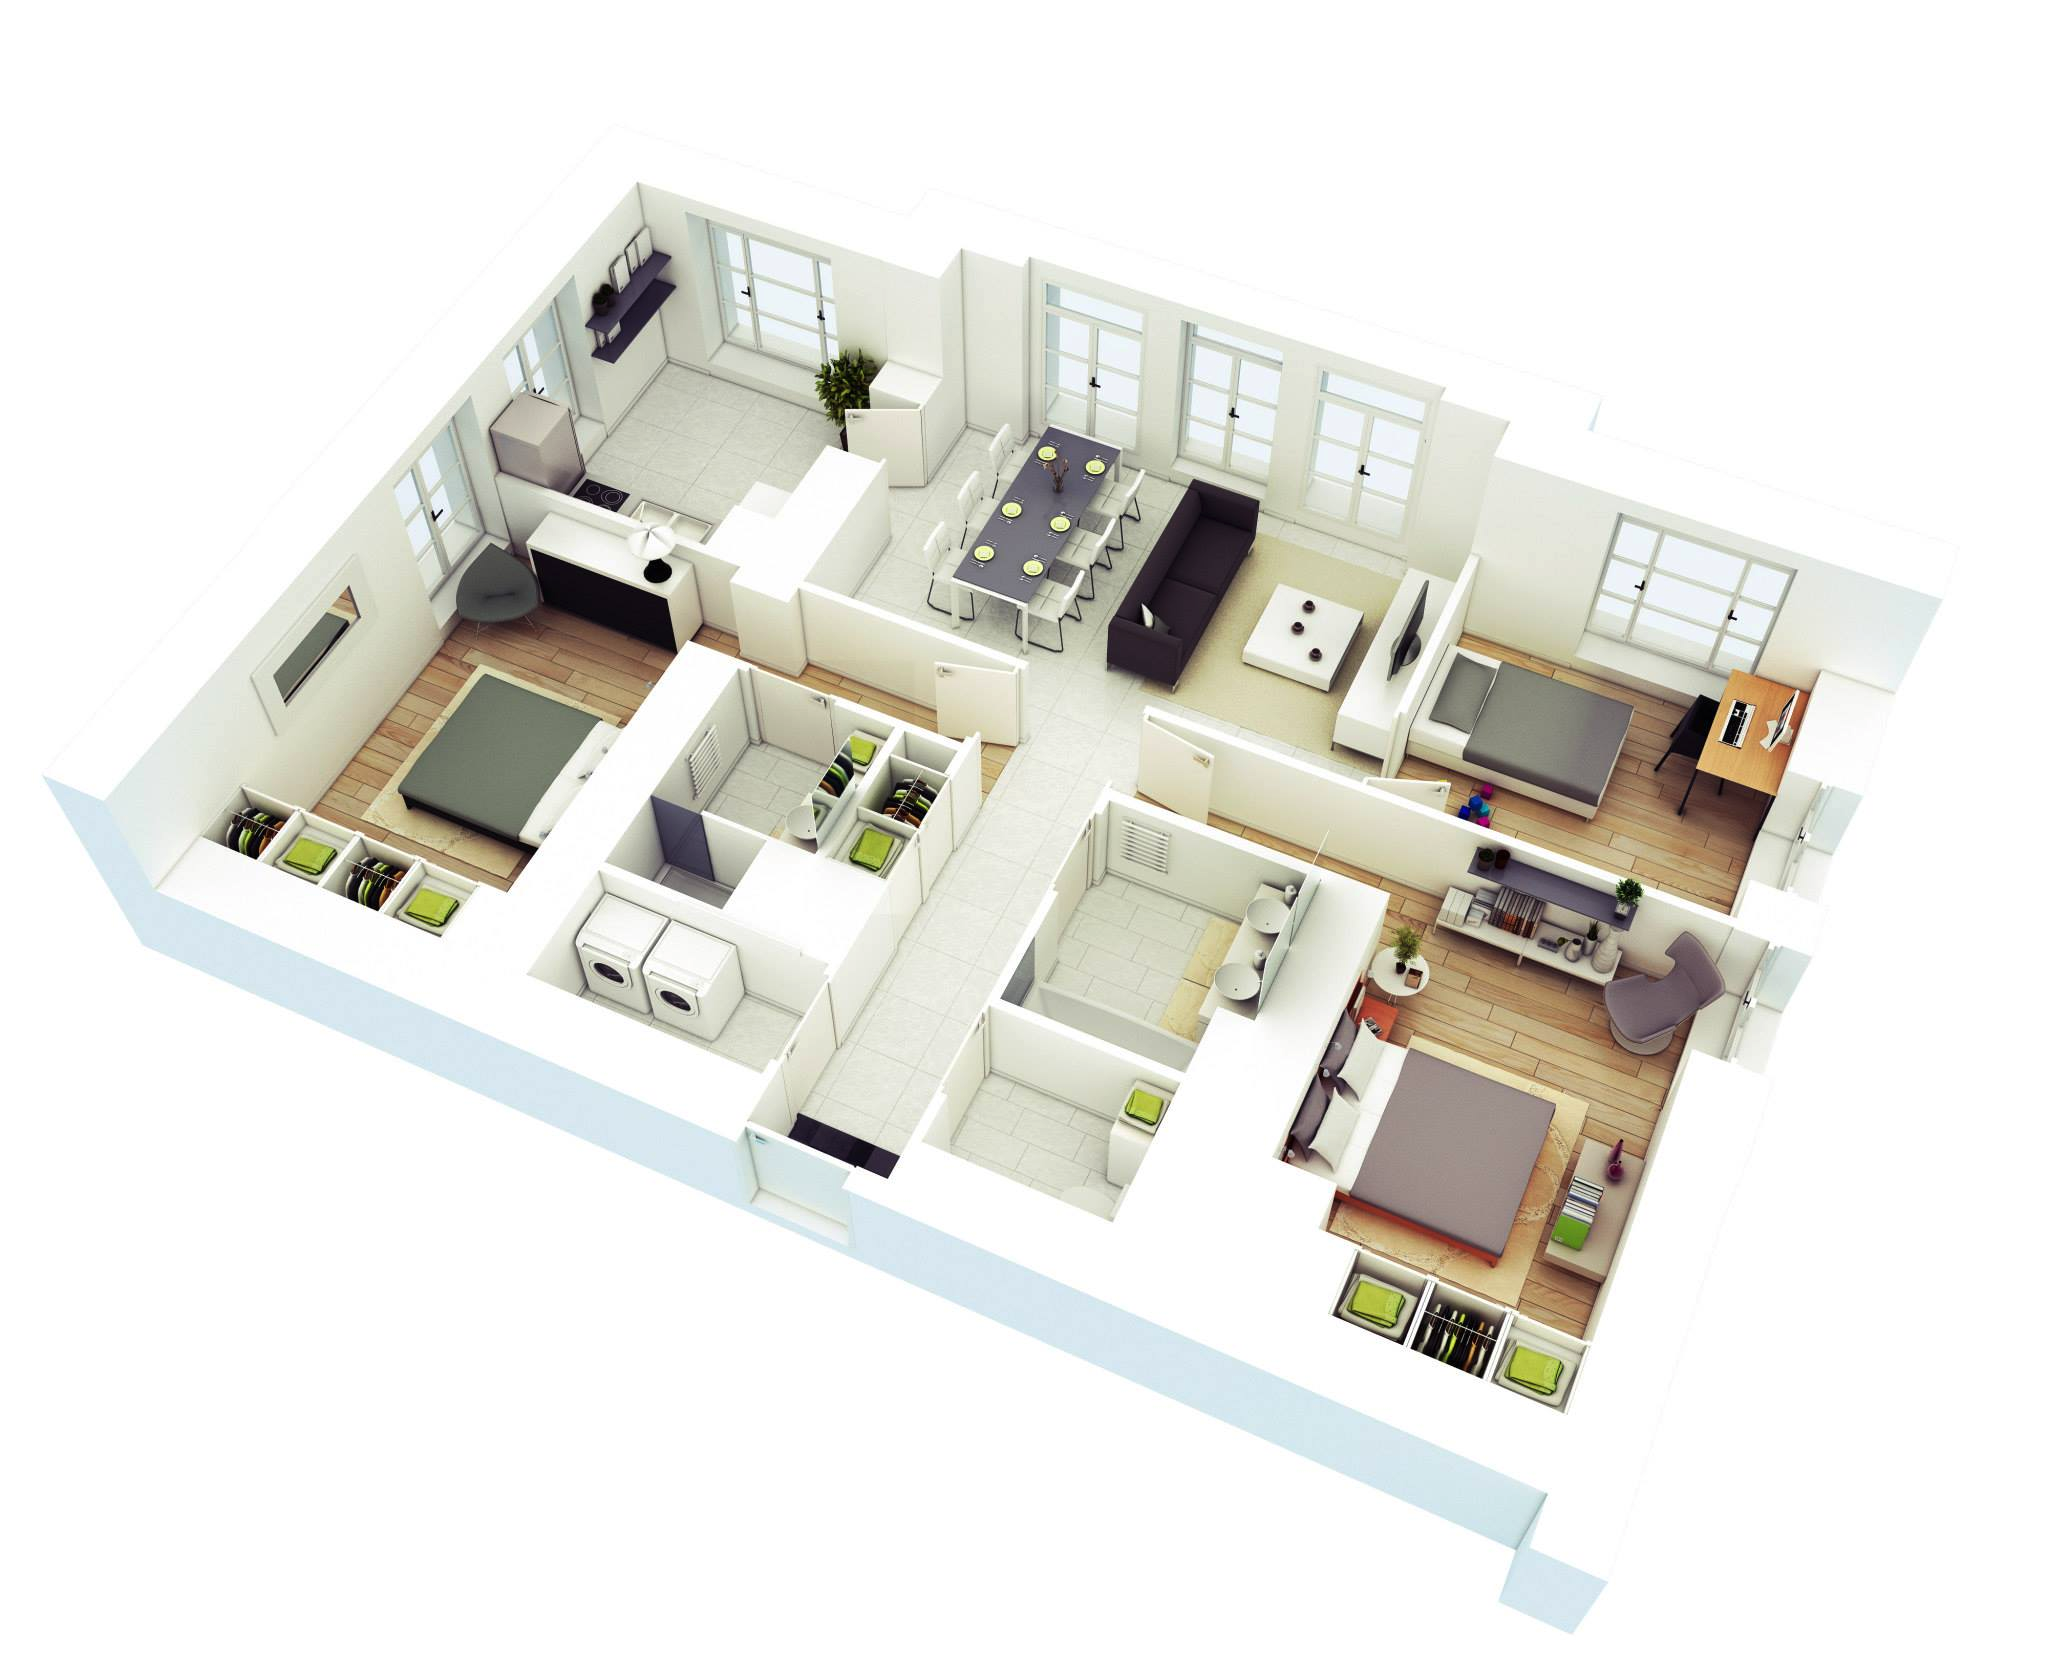 High Corner floorplan